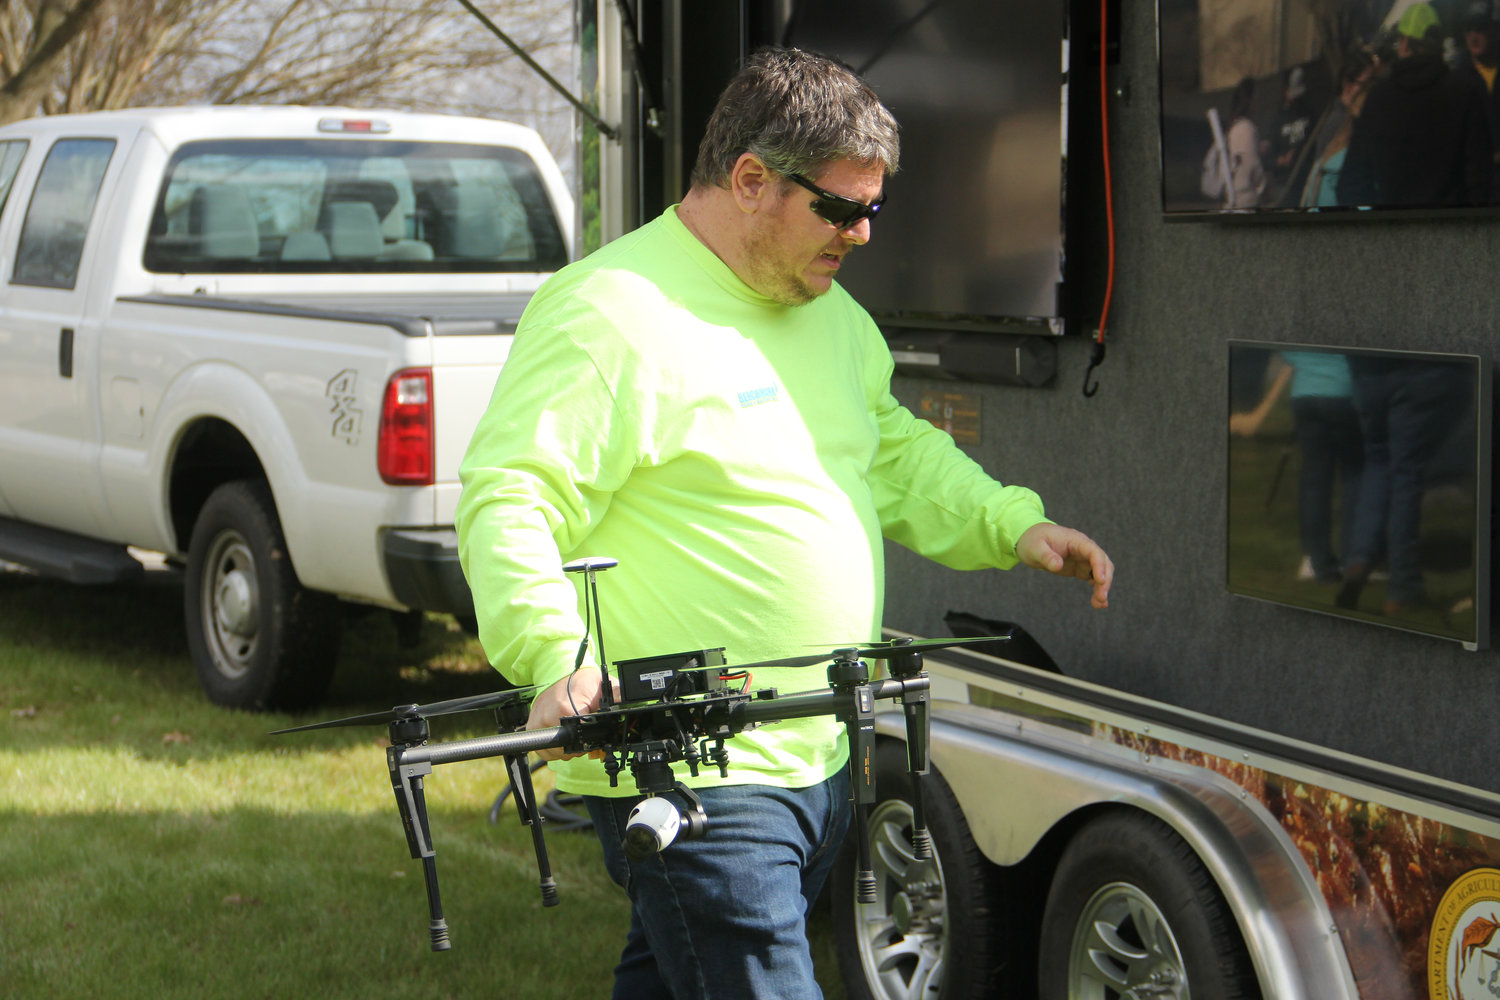 Brenden Bottum with Benchmark Tool & Supply brought a drone to give a flight demonstration as one of the stations at yesterday's Ag Fest.